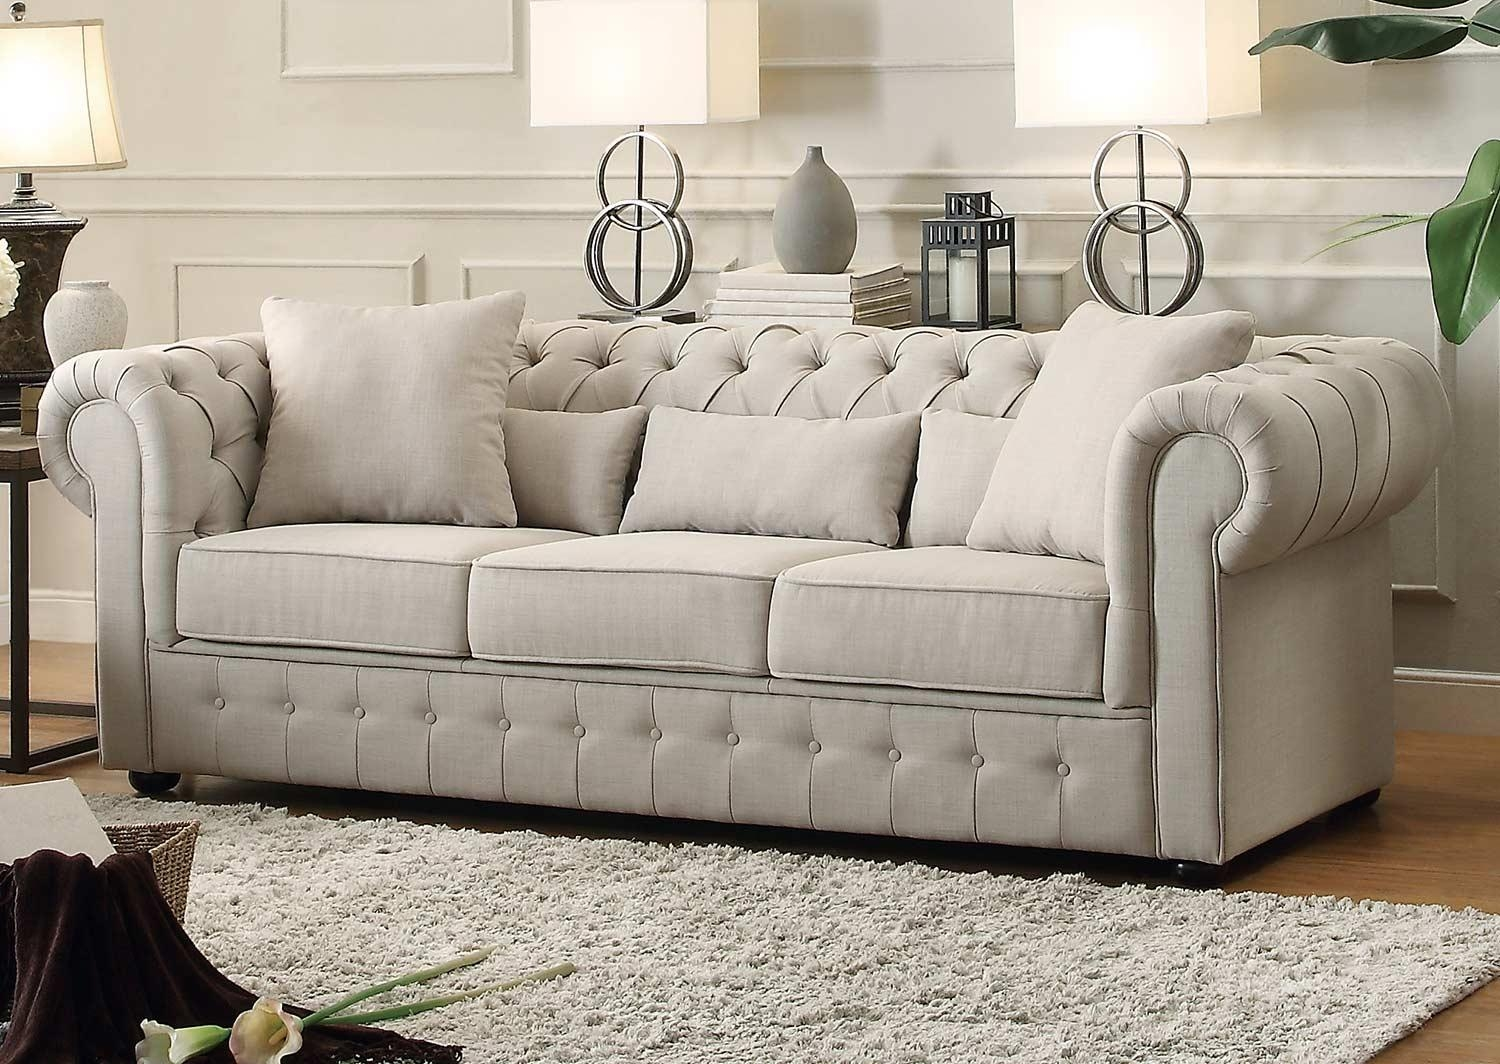 Homelegance Savonburg Sofa – Neutral 8427 3 With Homelegance Sofas (View 13 of 20)